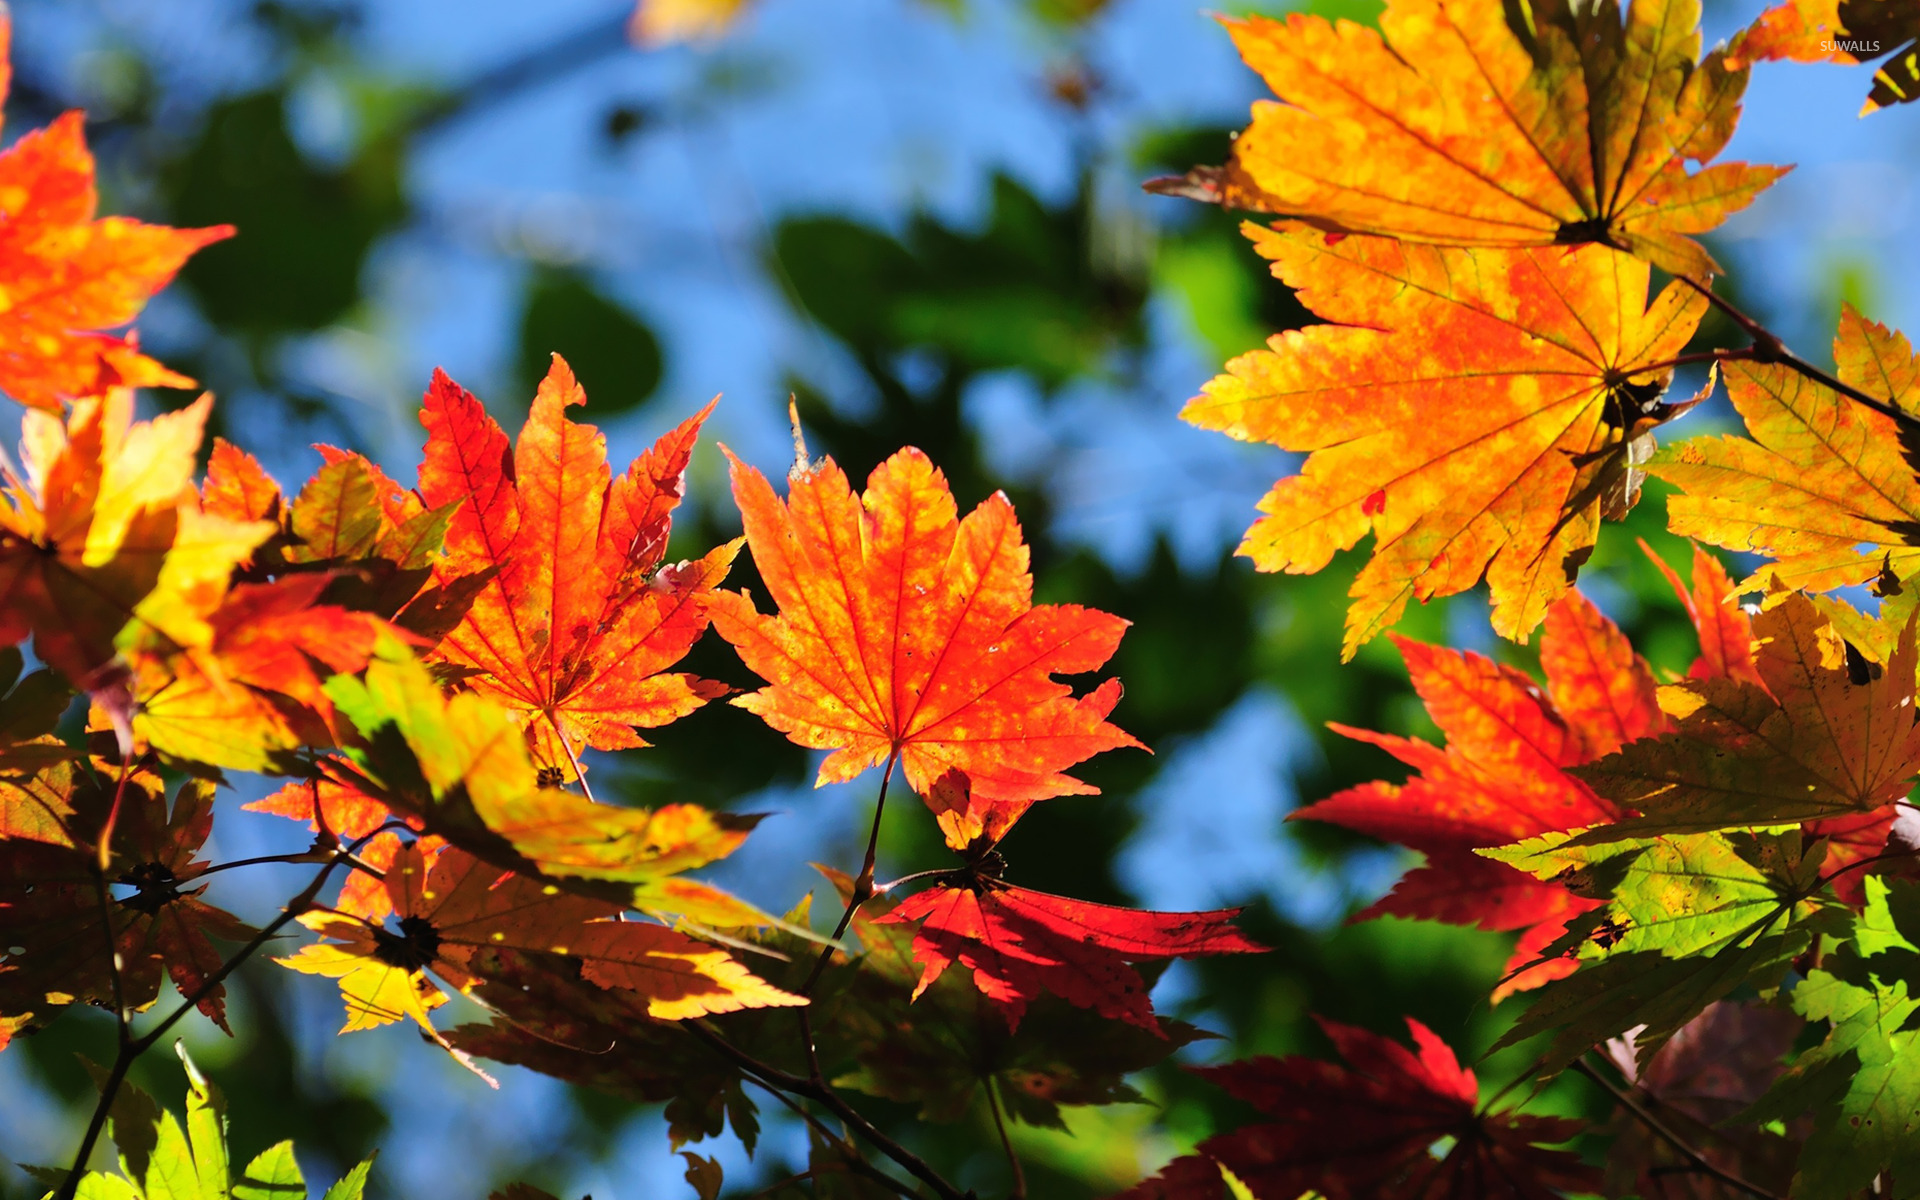 Autumn leaves [10] wallpaper graphy wallpapers